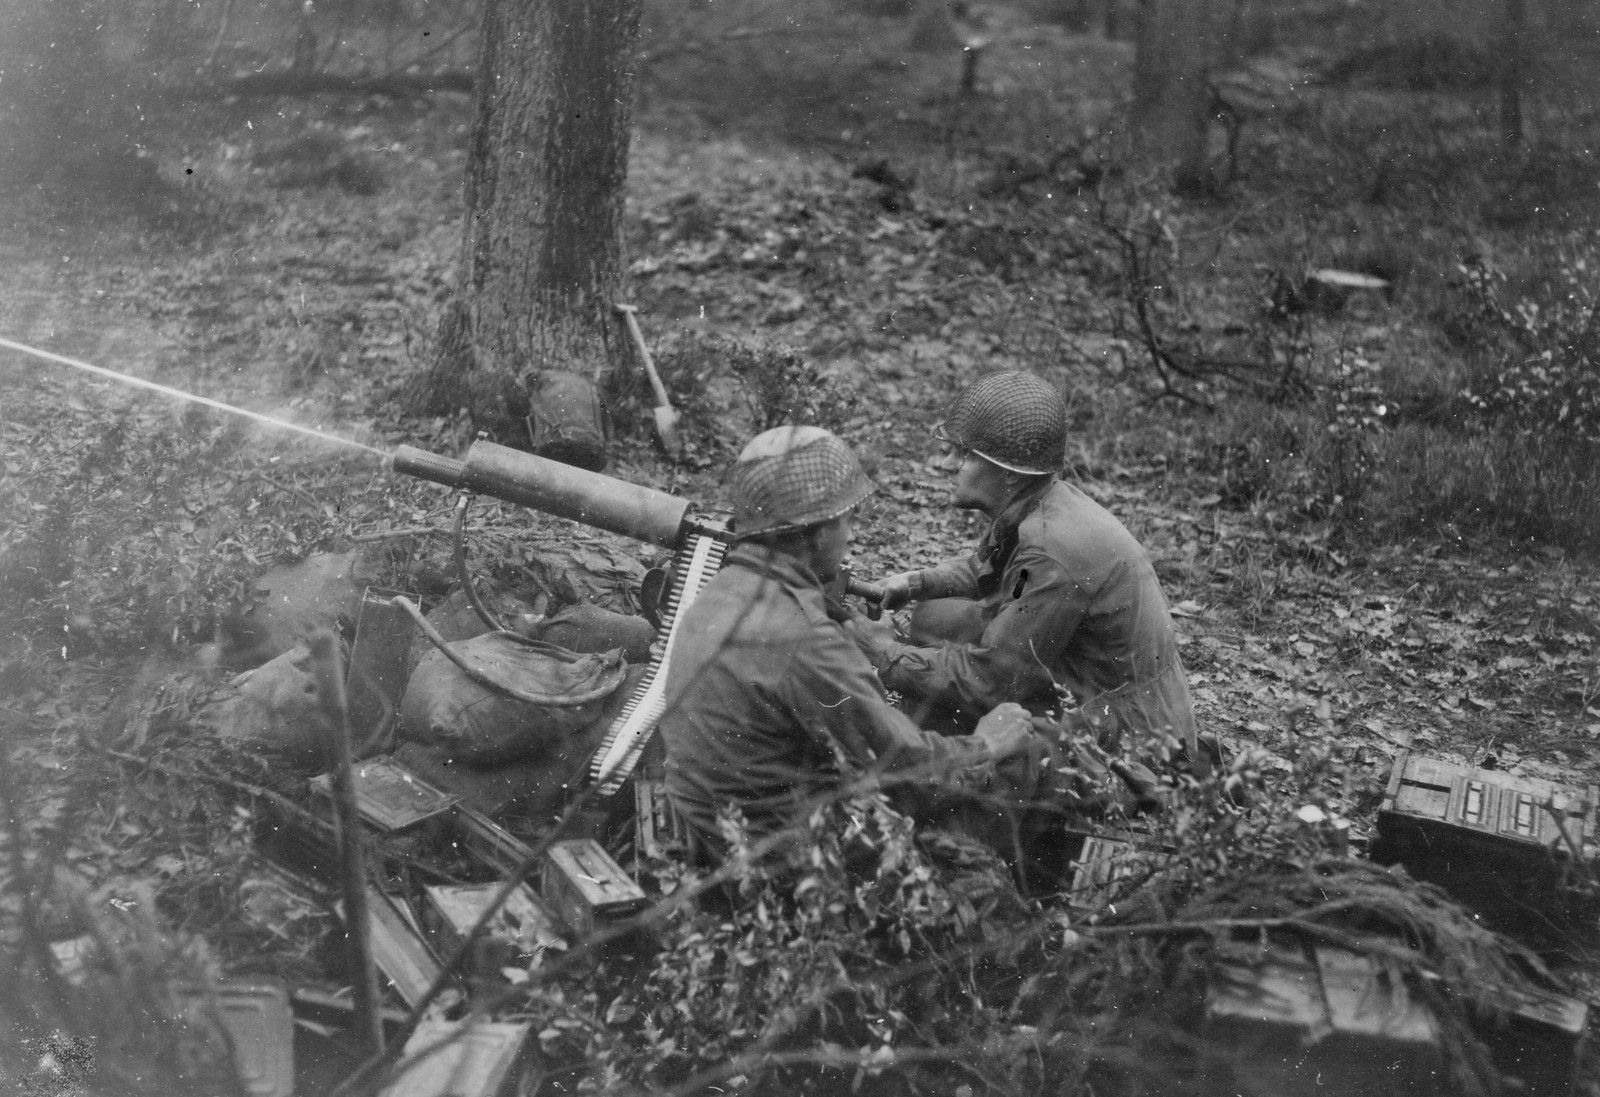 MG Crew from the 39th IR (9-ID) (2nd Plat, Dog Co) in the Huertgen Forest